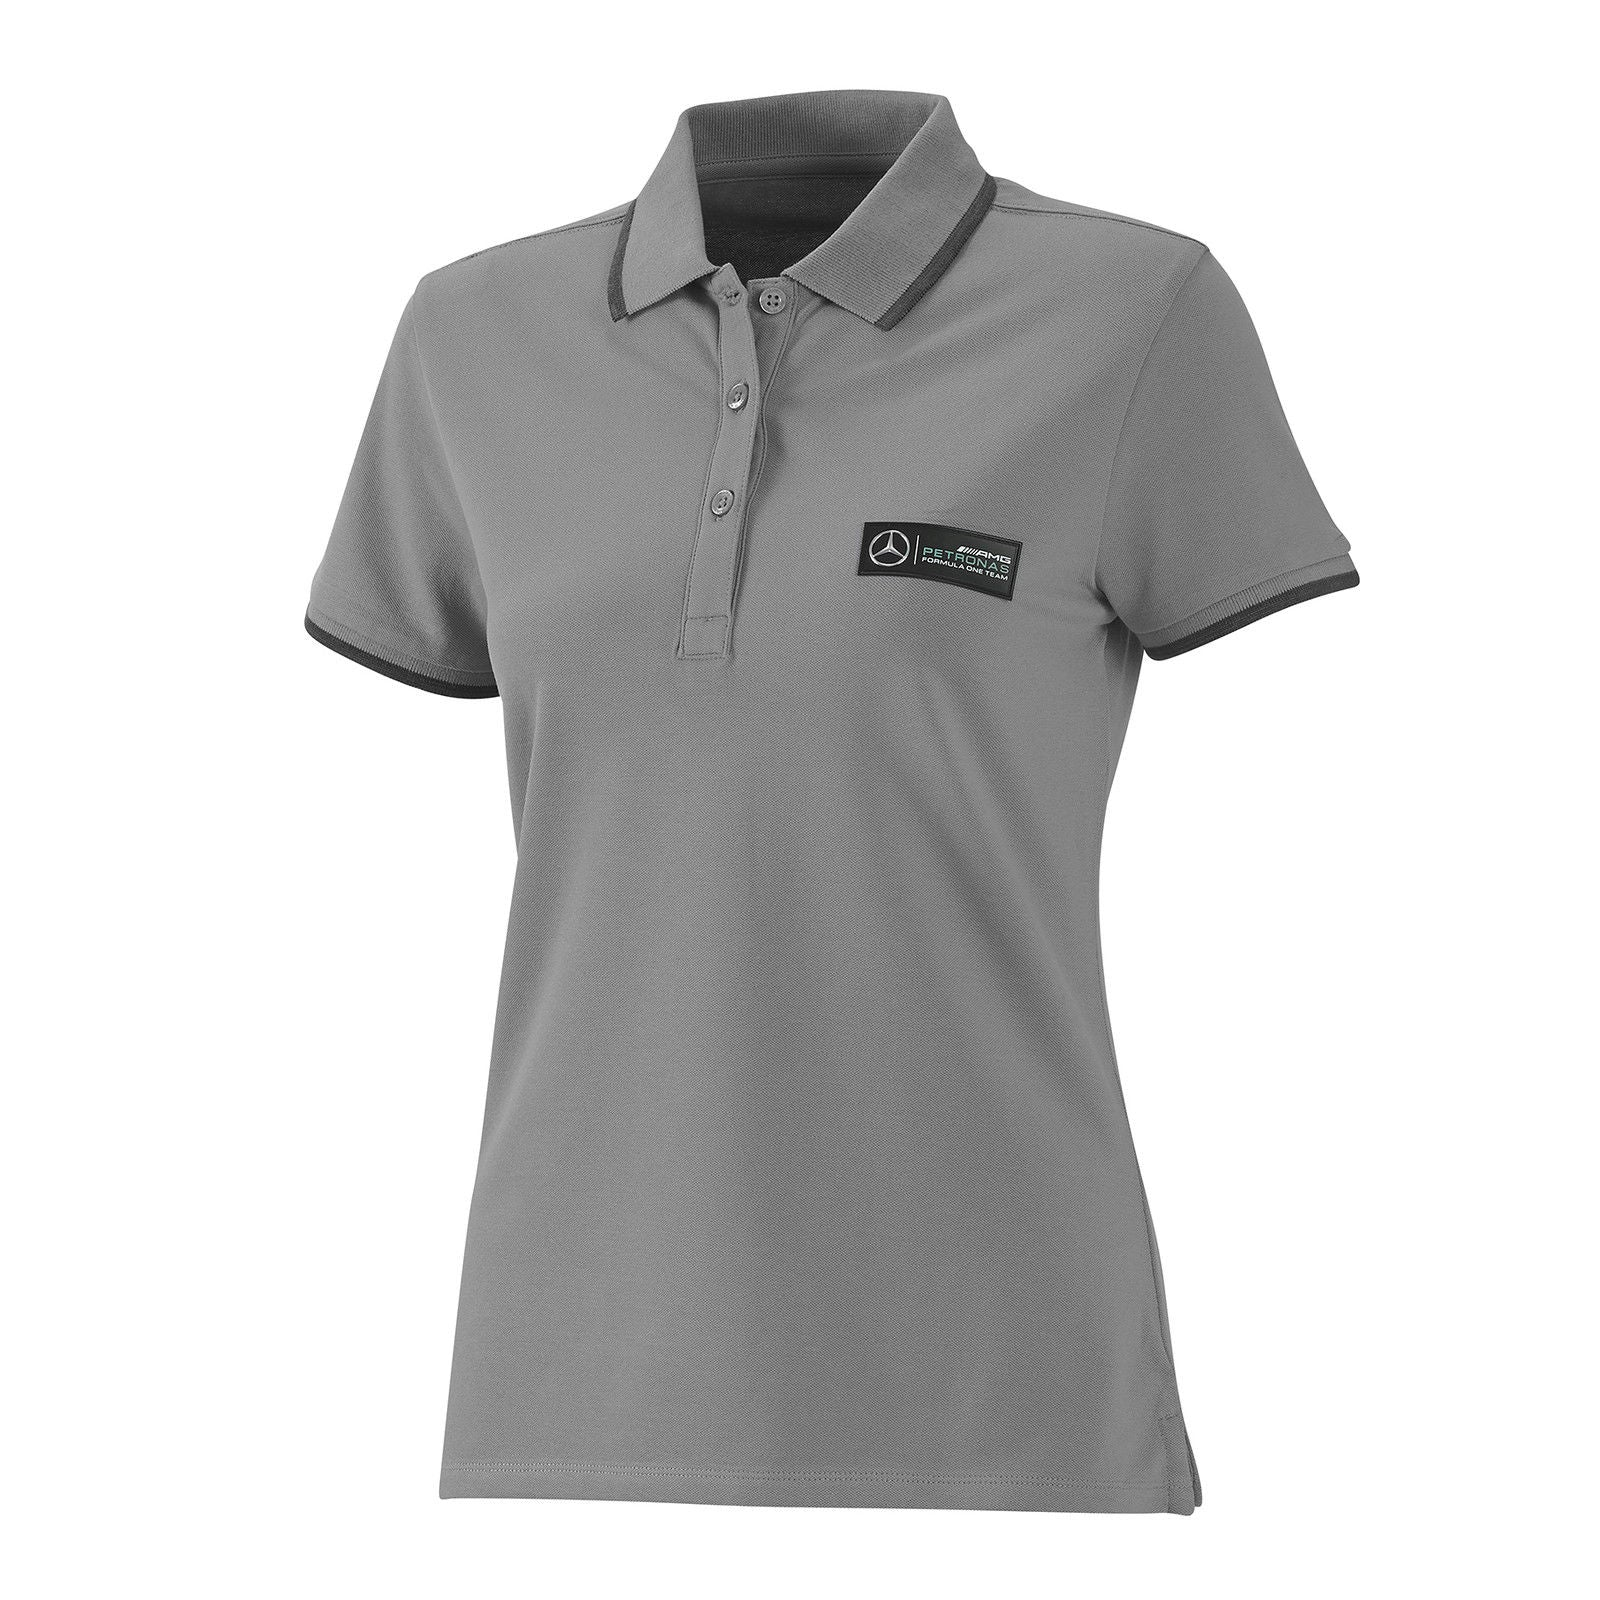 Mercedes AMG Petronas F1 Women's Classic Polo Shirt Grey